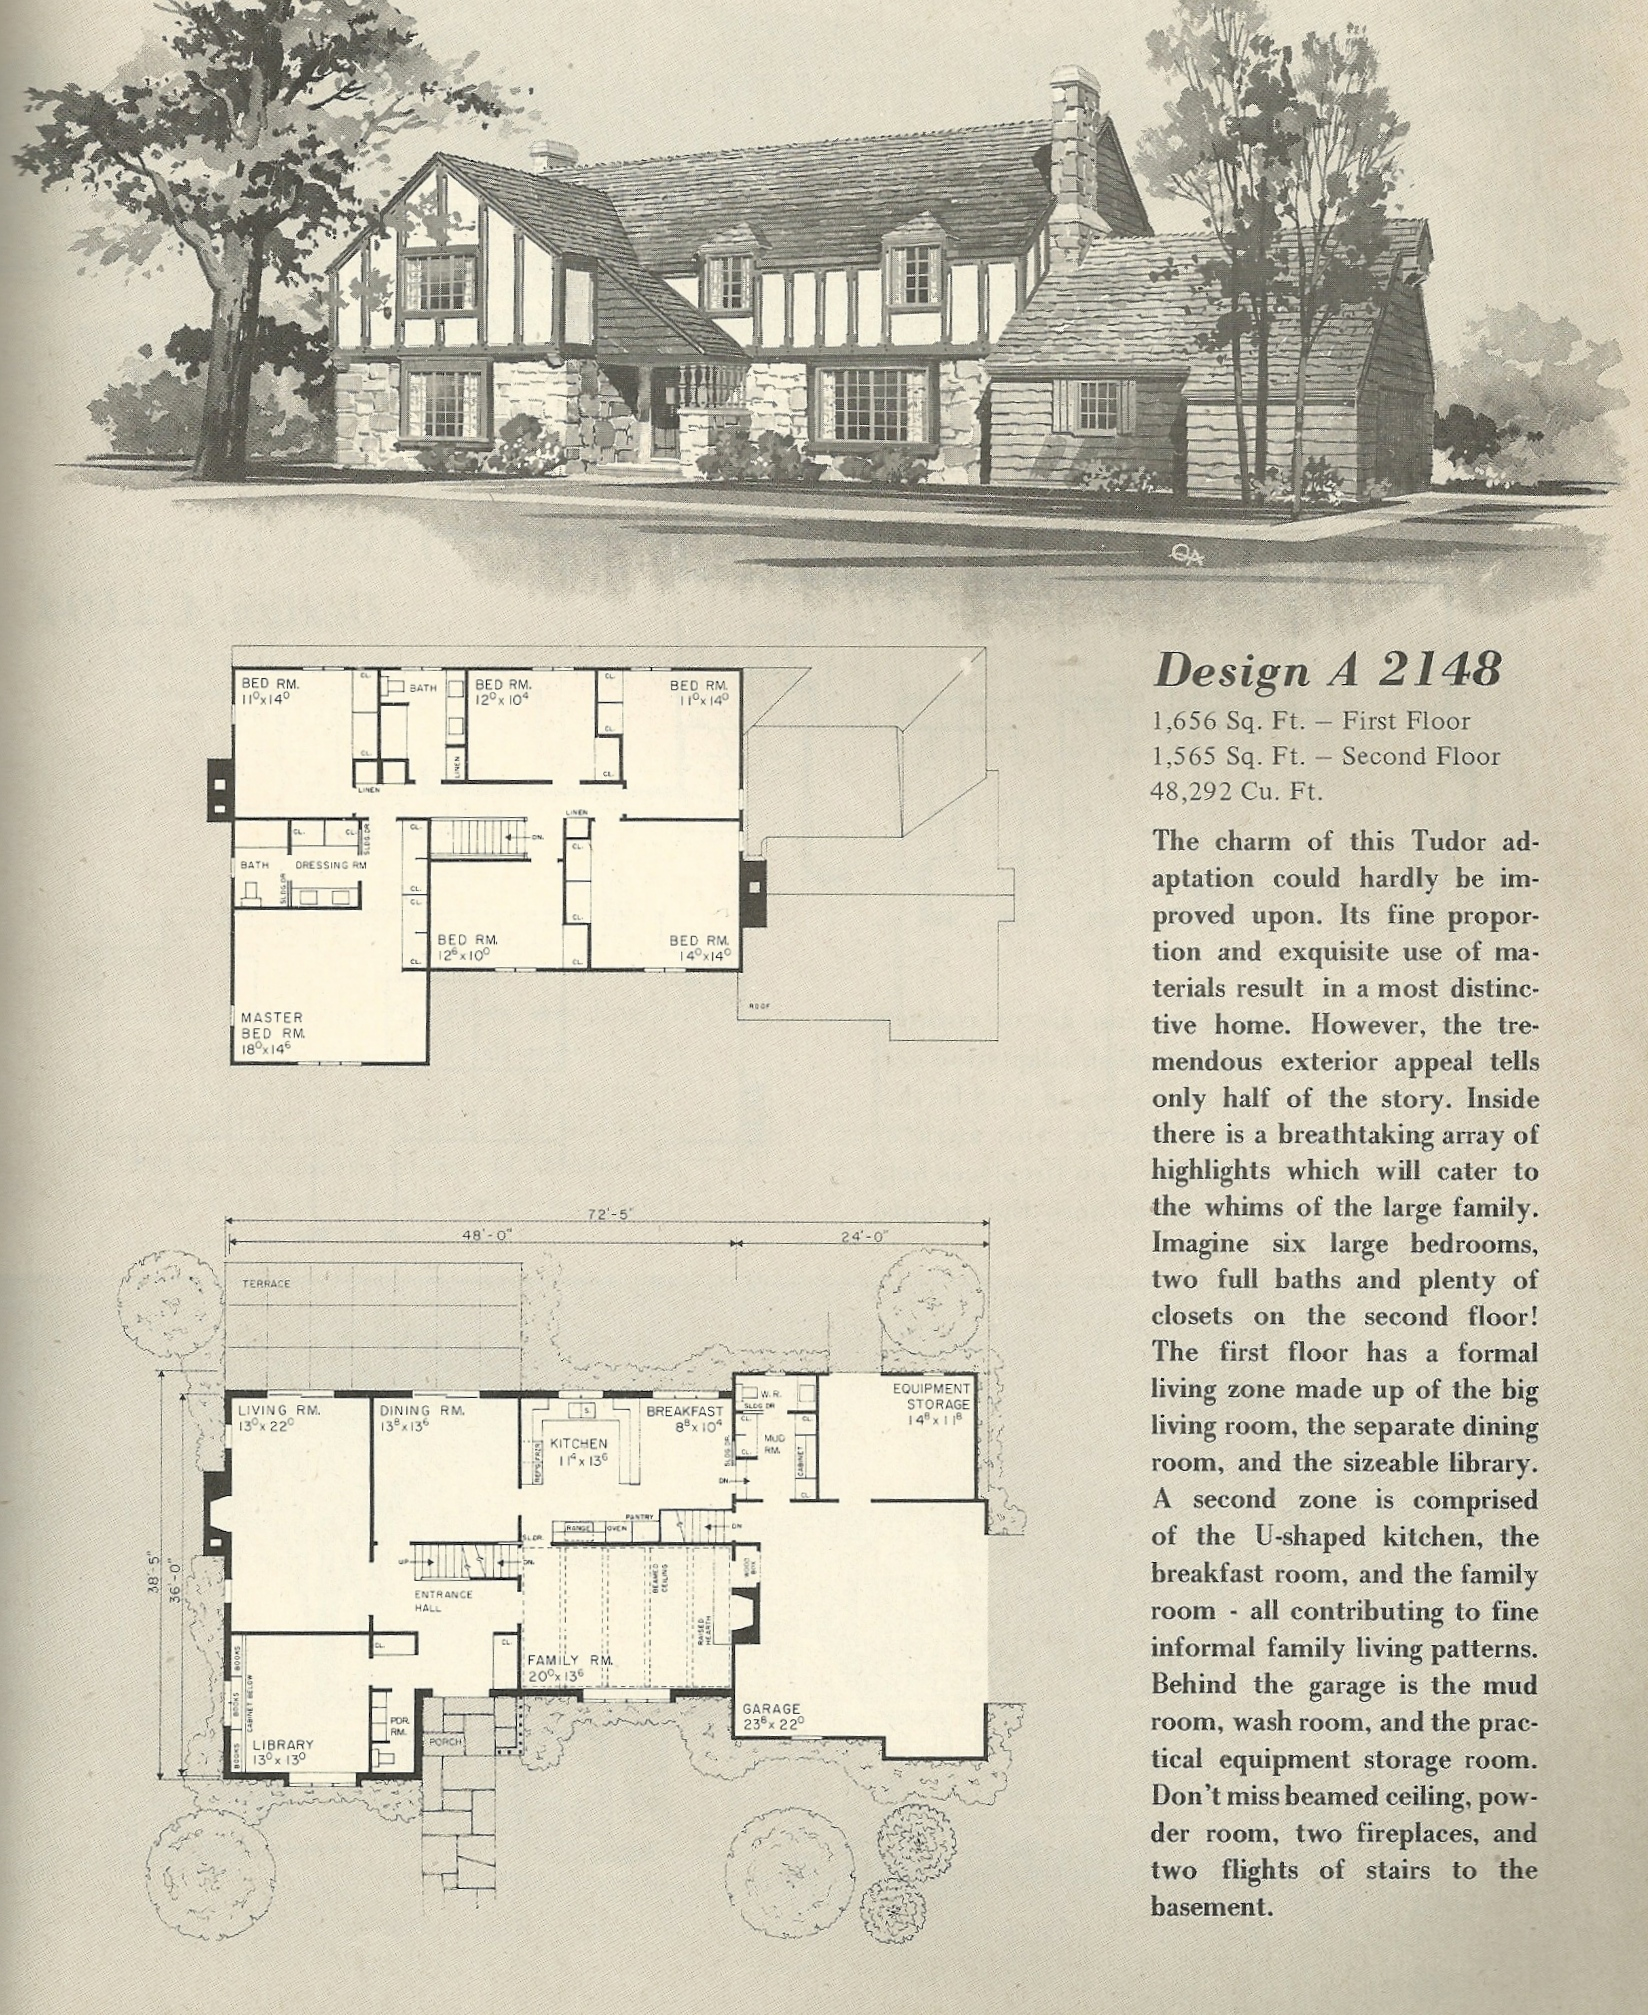 Vintage house plans 2148 antique alter ego - Retro home design ...